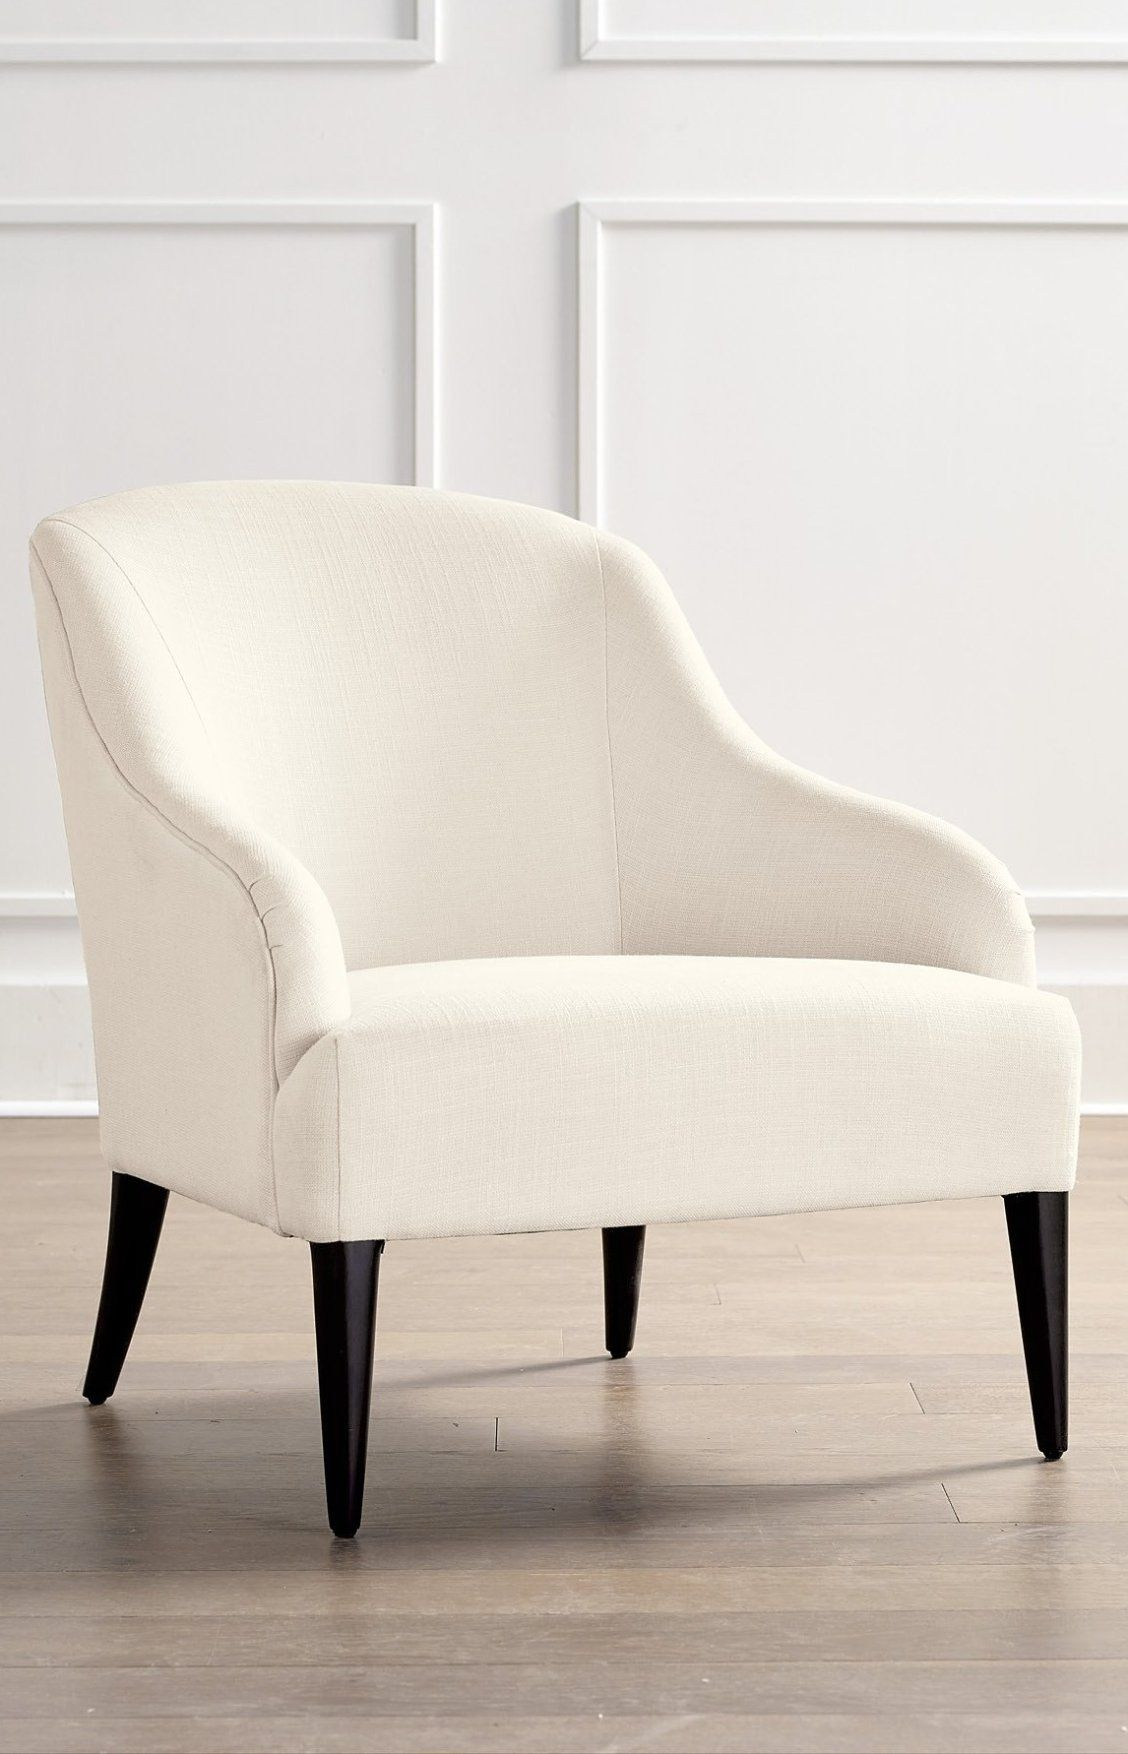 Jackson Accent Chair Frontgate In 2020 Accent Chairs Luxe Living Room Upholstered Accent Chairs